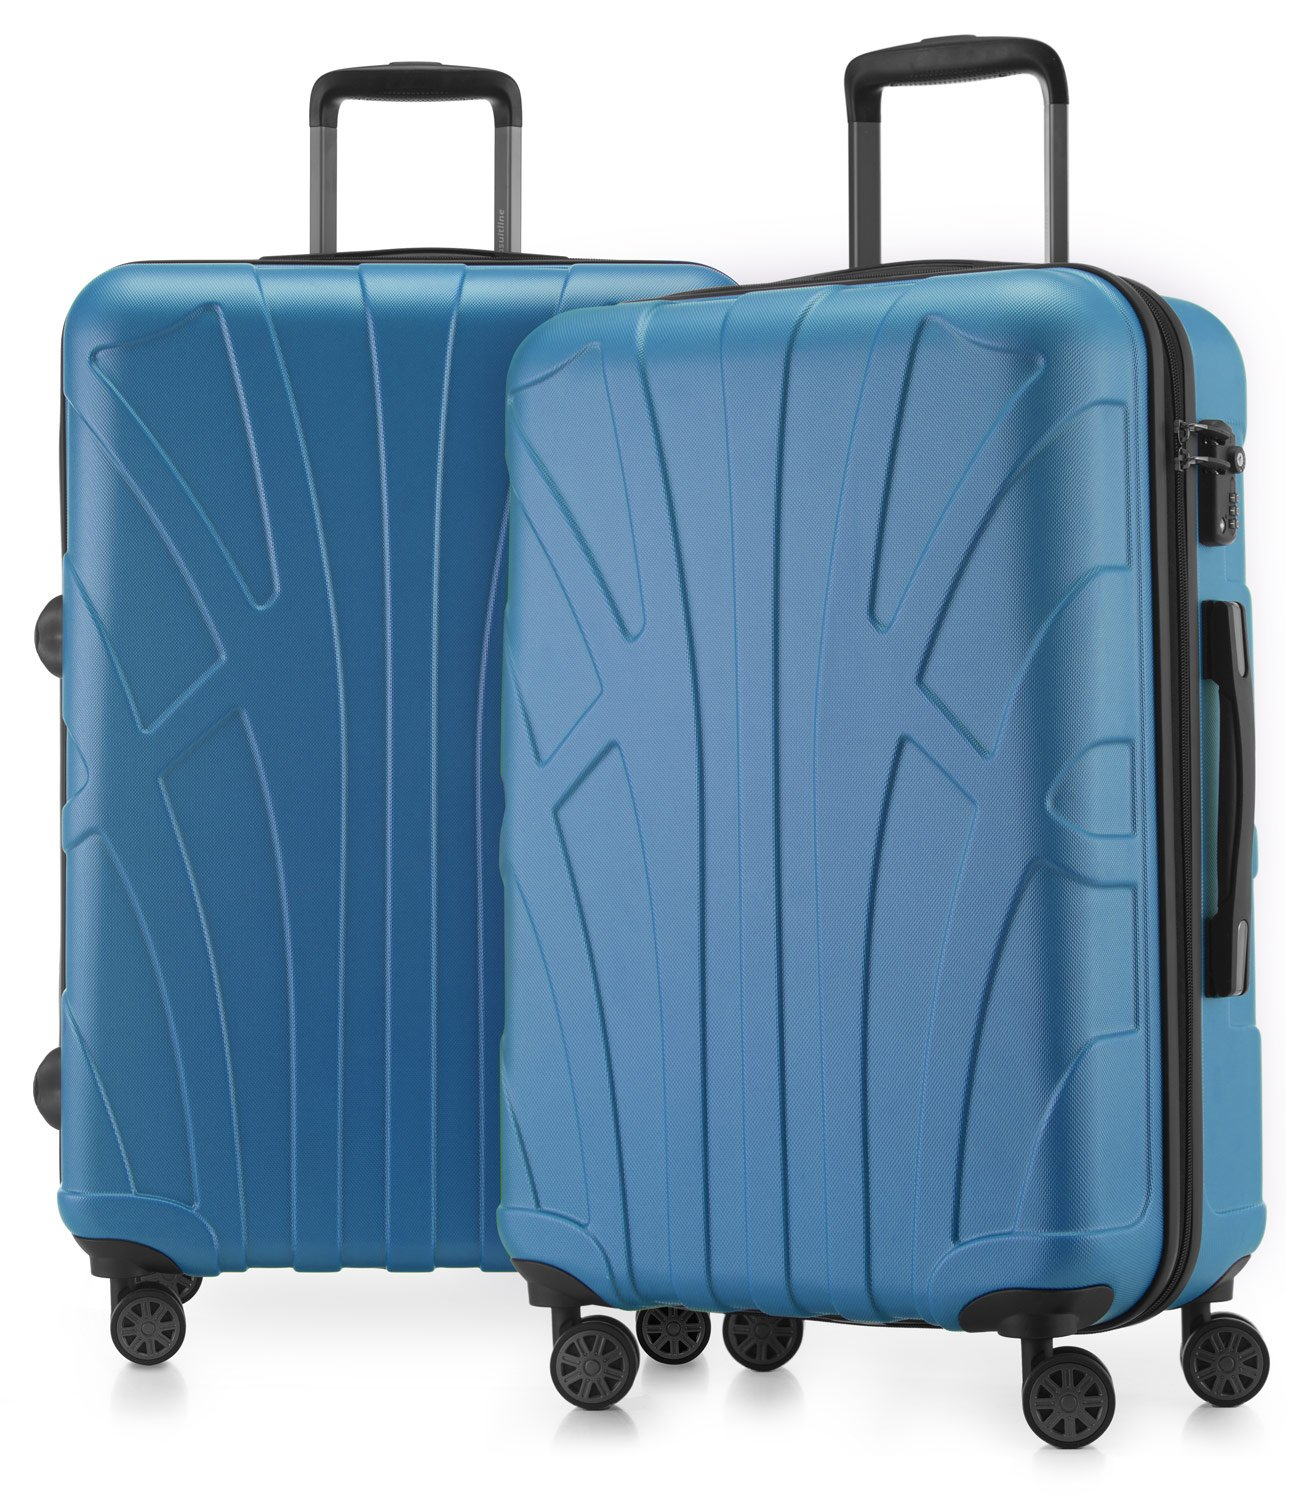 Suitline - 2er Koffer-Set Trolley-Set Rollkoffer Hartschalen-Koffer Reisekoffer, TSA, 66 cm, 100% ABS, Matt, Braun Suitline 24-24